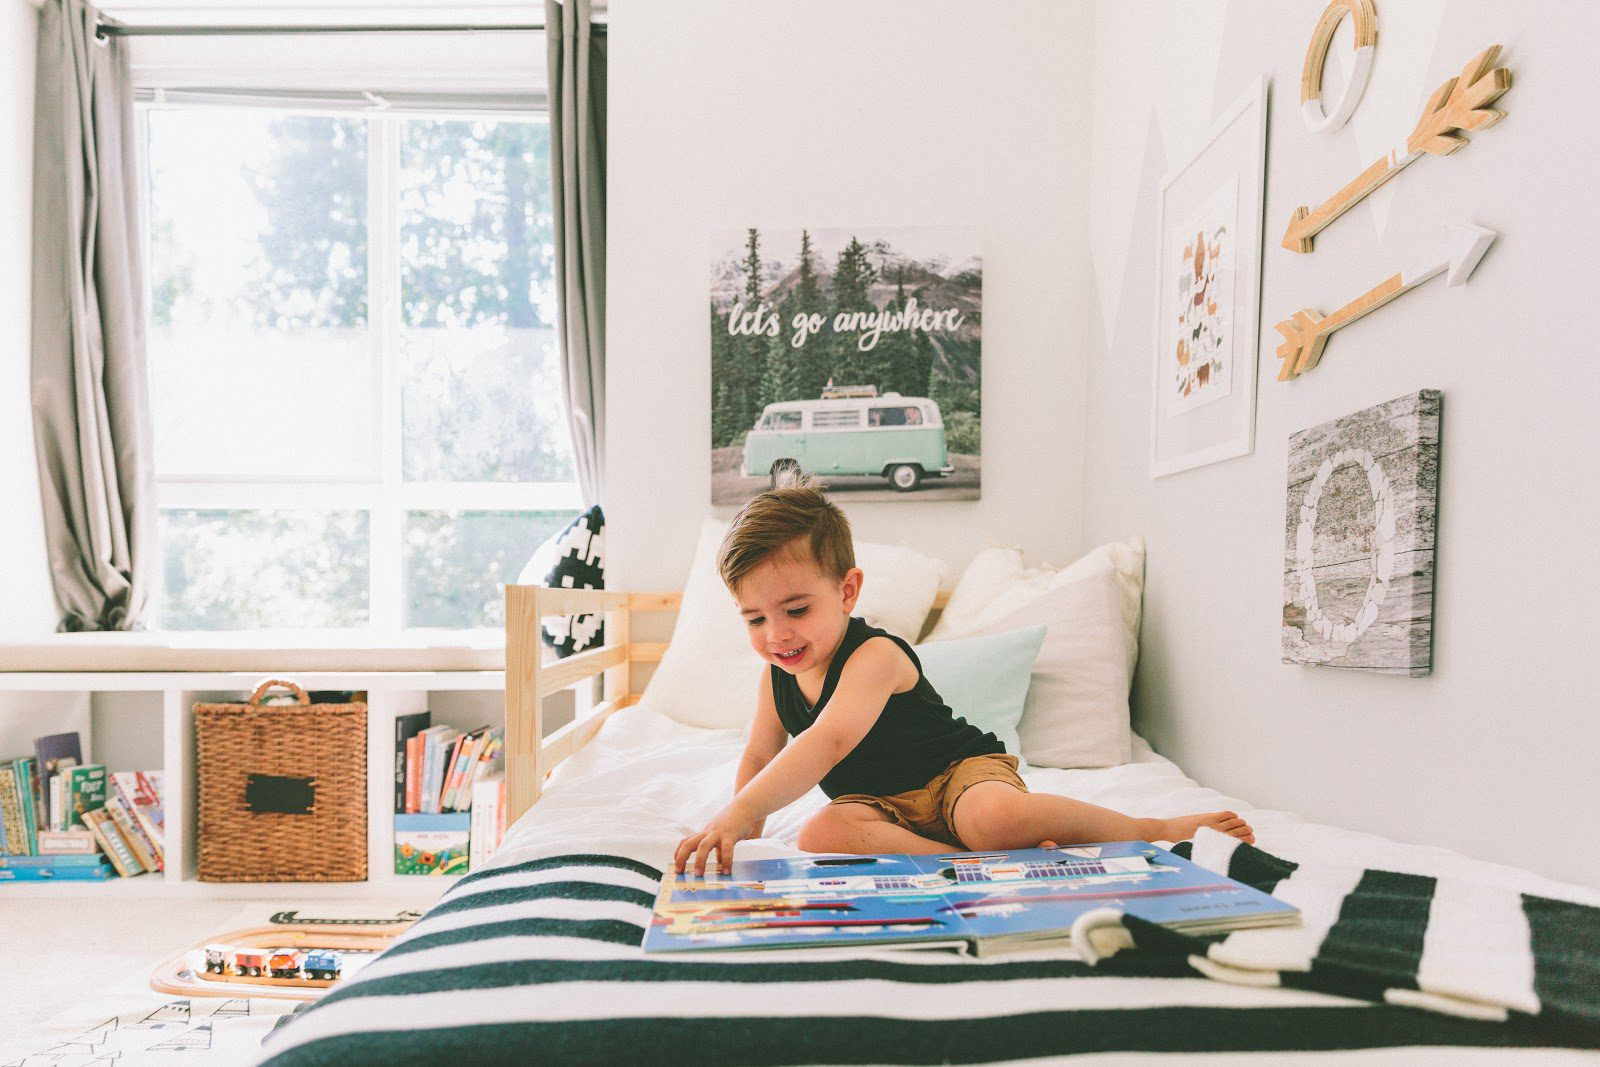 Learn how to design a dream space on a budget with these useful tips and techniques for buying kids' bedroom furniture.